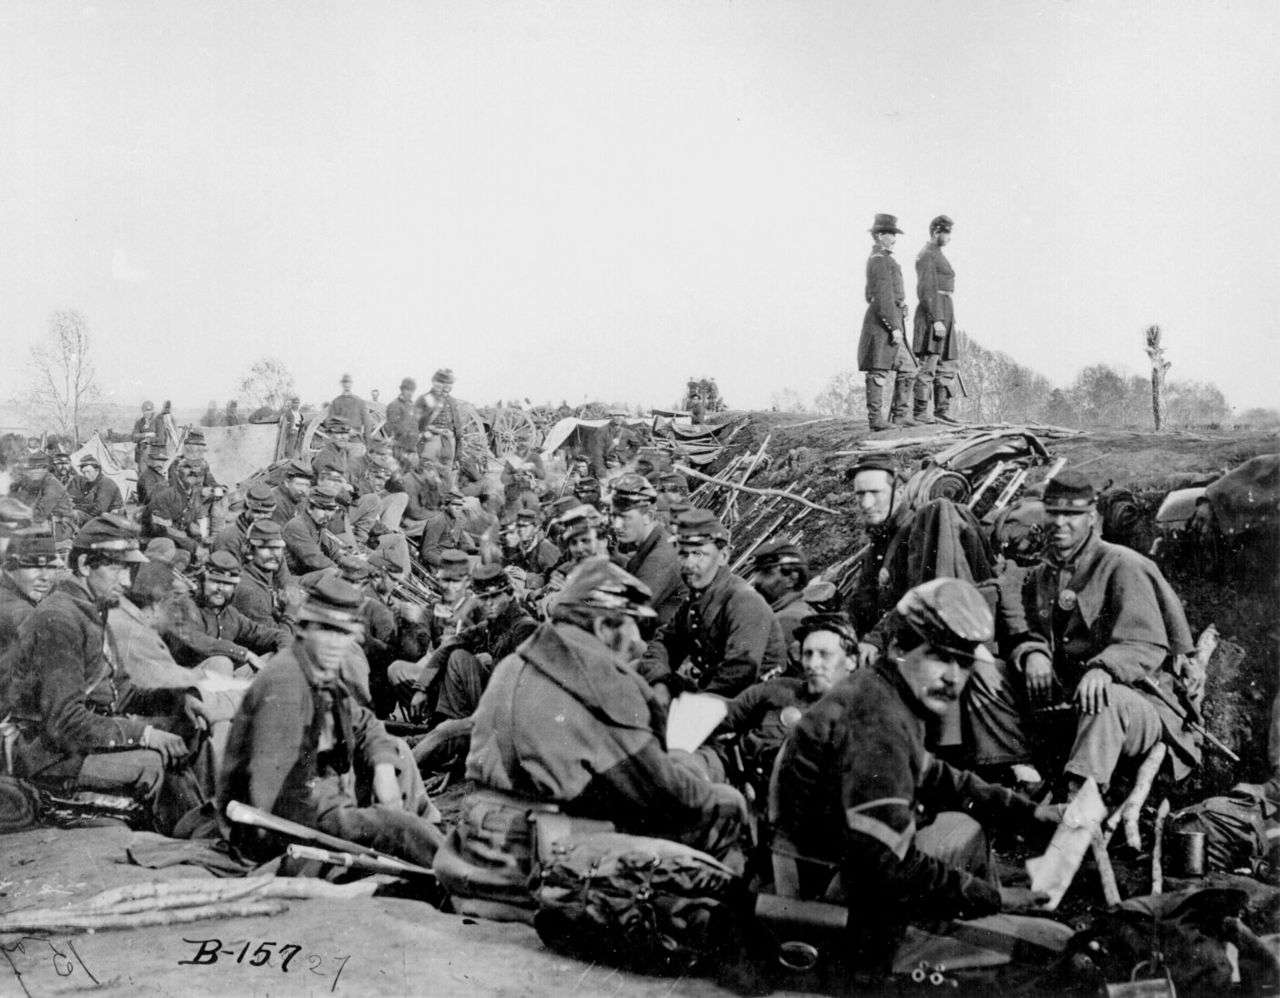 Soldiers in the trenches before battle, Petersburg, Virginia